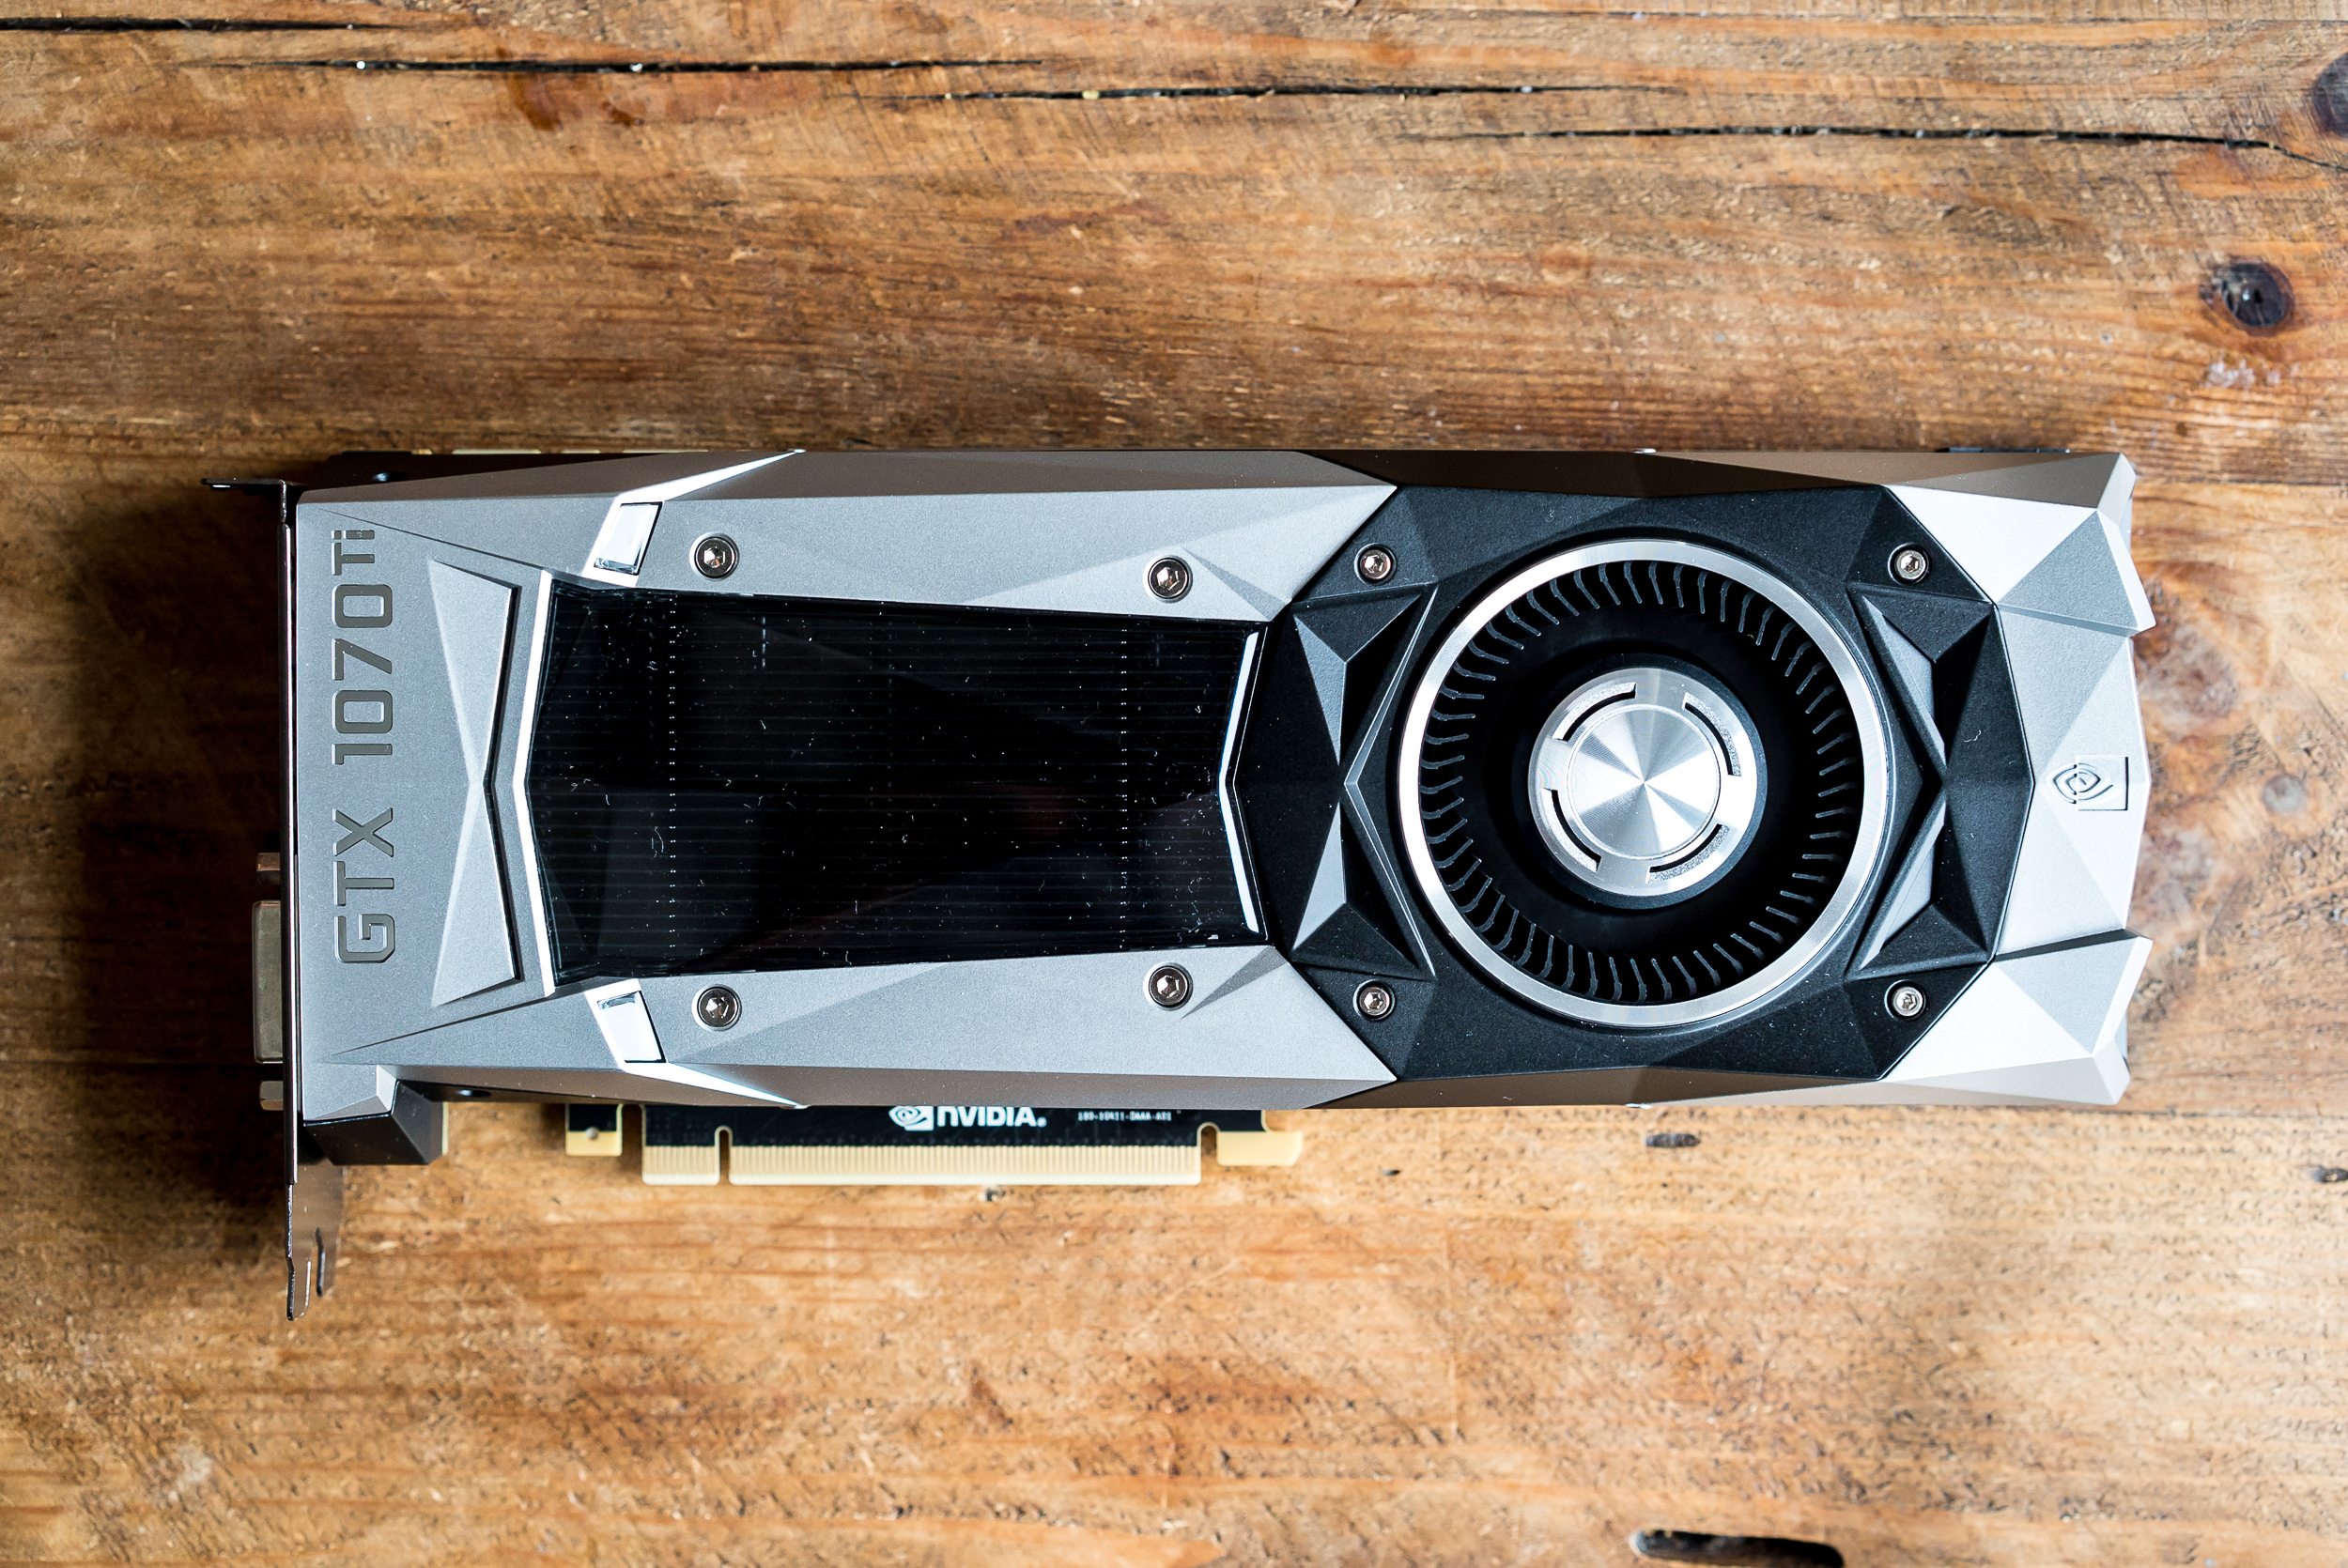 Nvidia GTX 1070 Ti review: A fine graphics card—but price